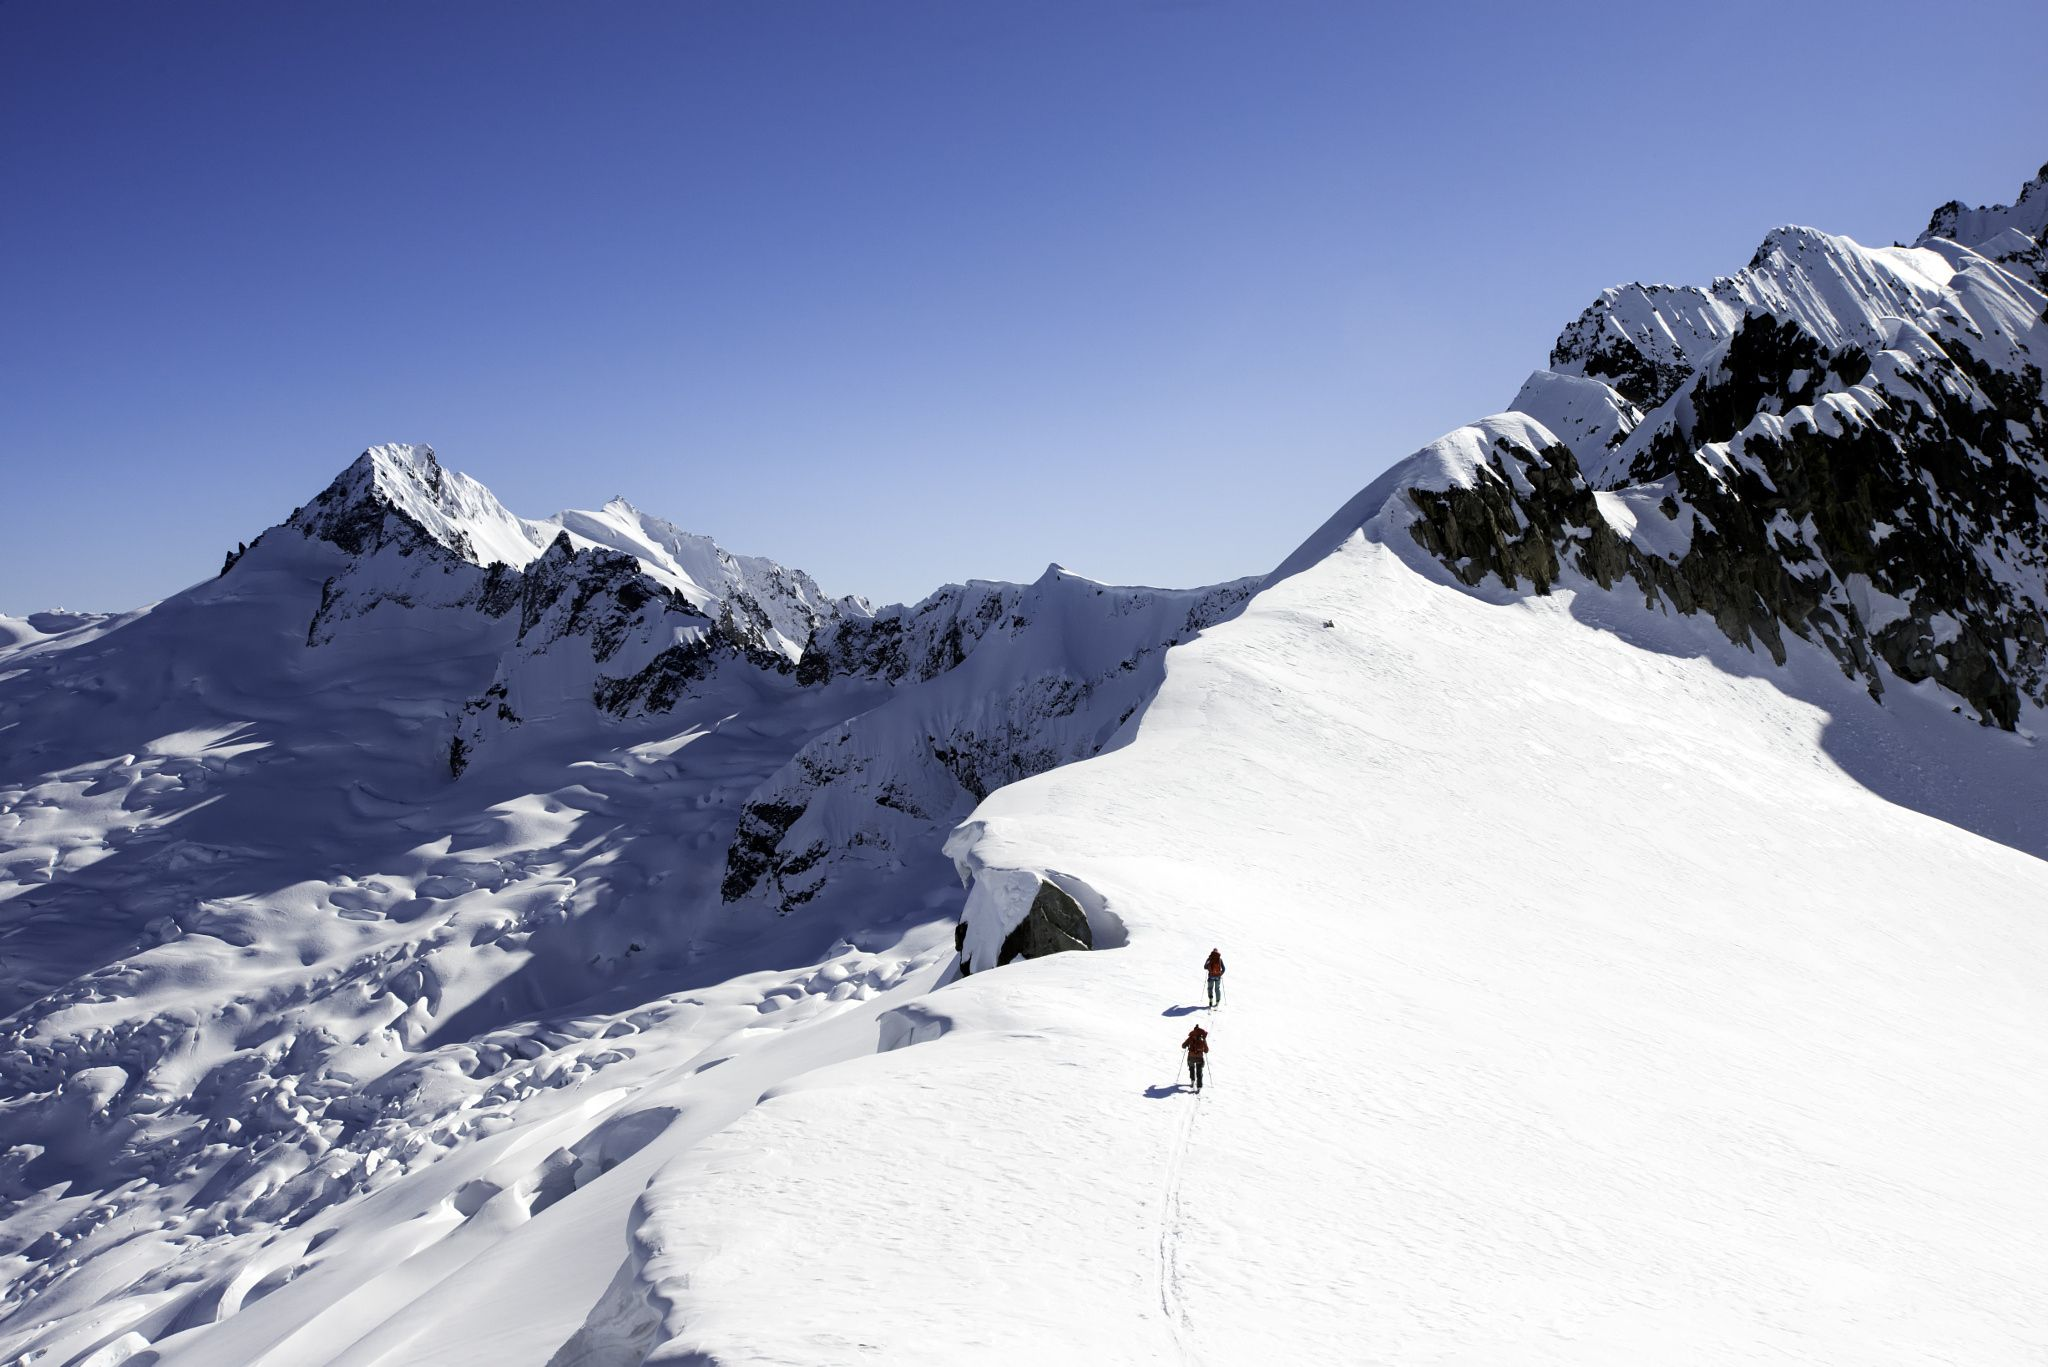 Skiing above the Boston Glacier - There are few glaciers in the North Cascades as wild as the Boston Glacier. Considered the widest ice field in the lower 48 states makes it big, but it is also a tumultuous place. Buckner and it's North Face rise in the background of this image and Andy and Mike Traslin skin up a ridge overlooking the expanse. This is the 'awesome' that makes the North Cascades so special.    Forbidden Tour, North Cascades, Washington, March 2015